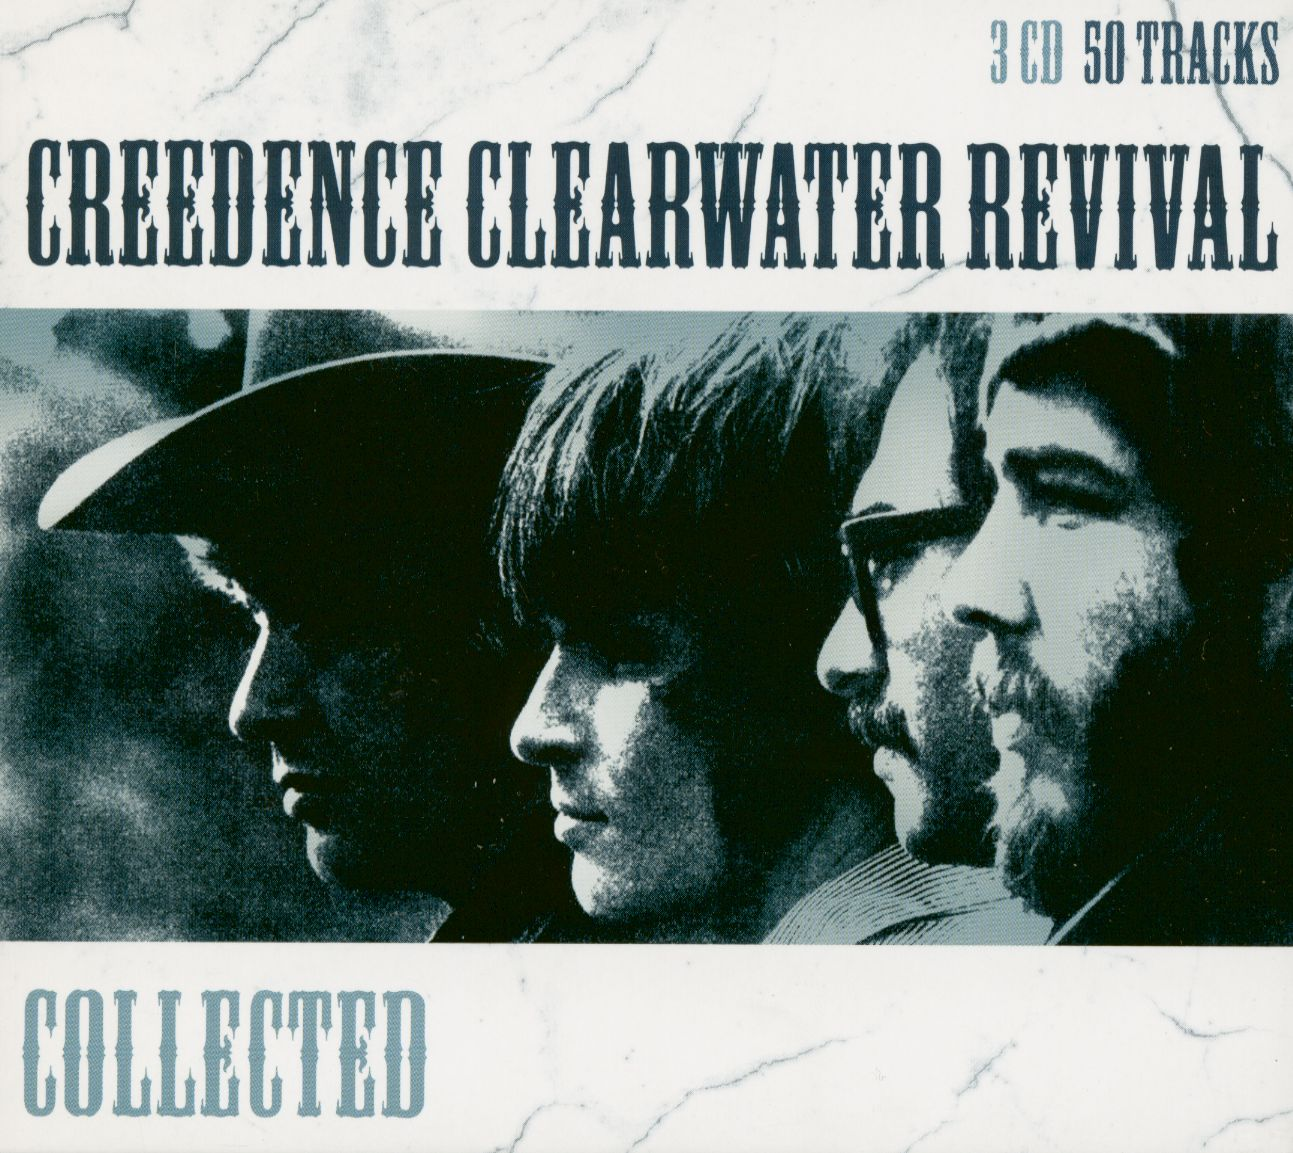 Creedence Clearwater Revival CD Collected   Ultimate 20 CD   Bear Family  Records